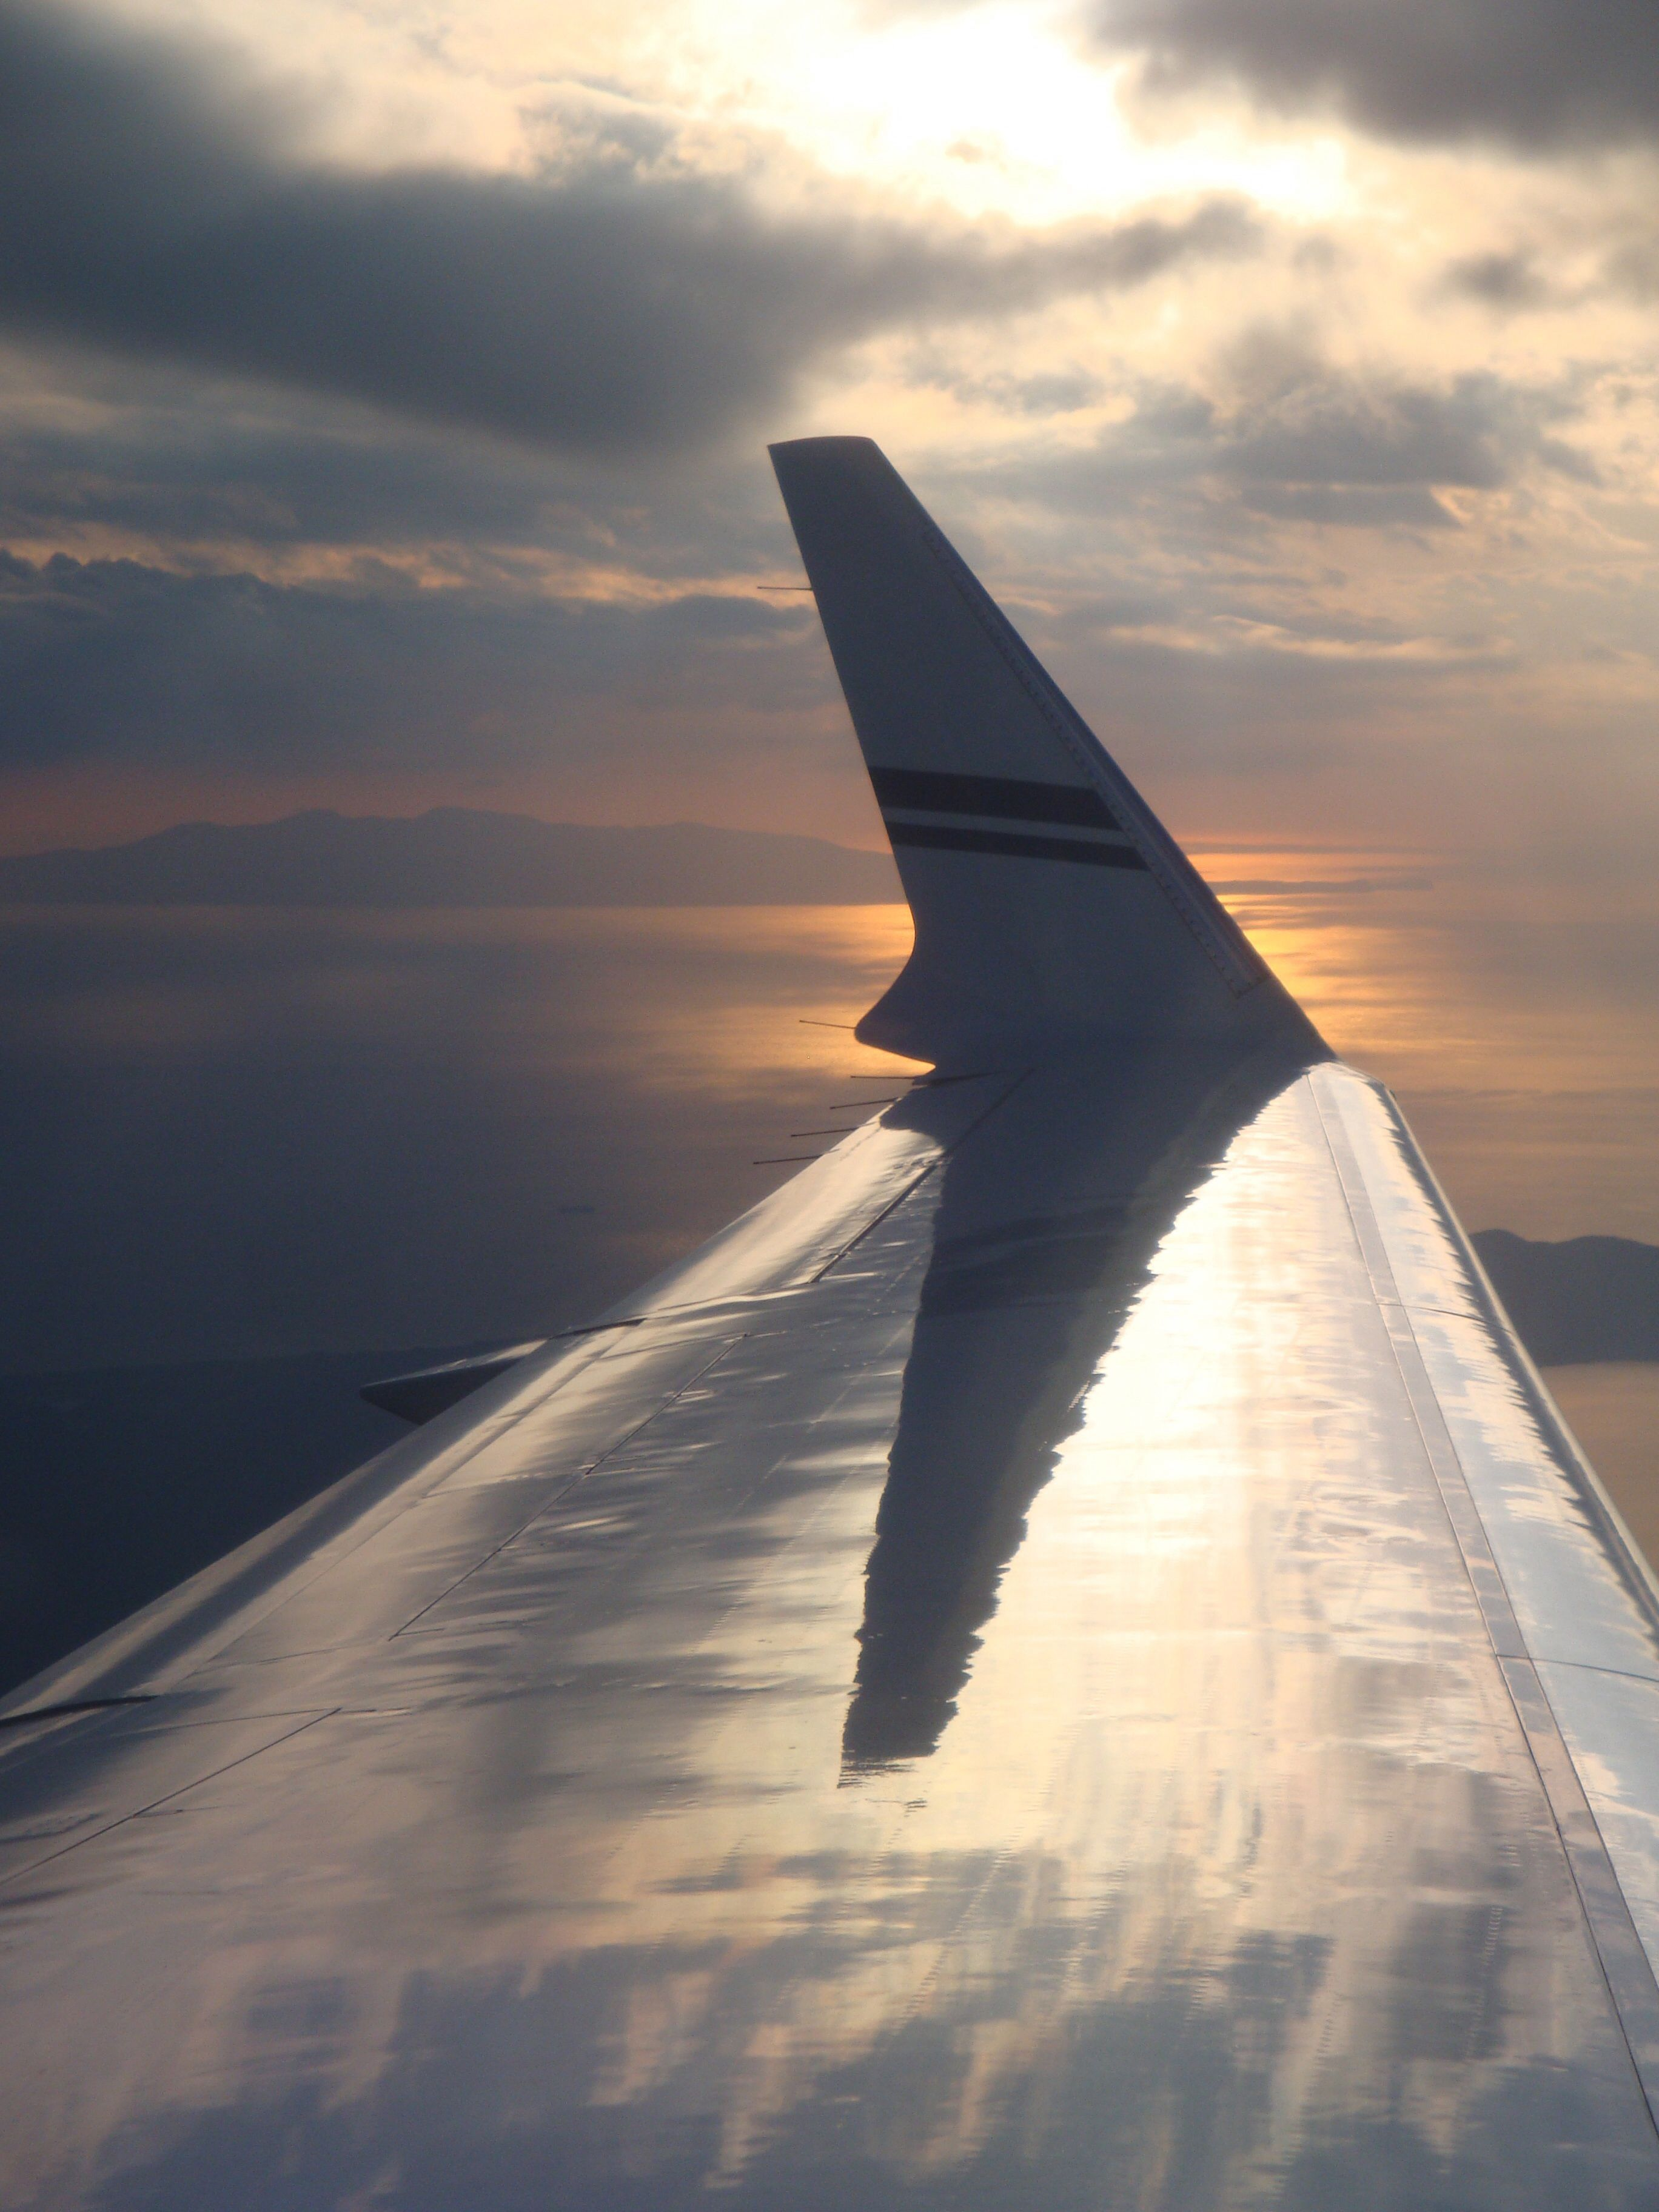 Travel the world with Private Jet Charter. Charter a Jet